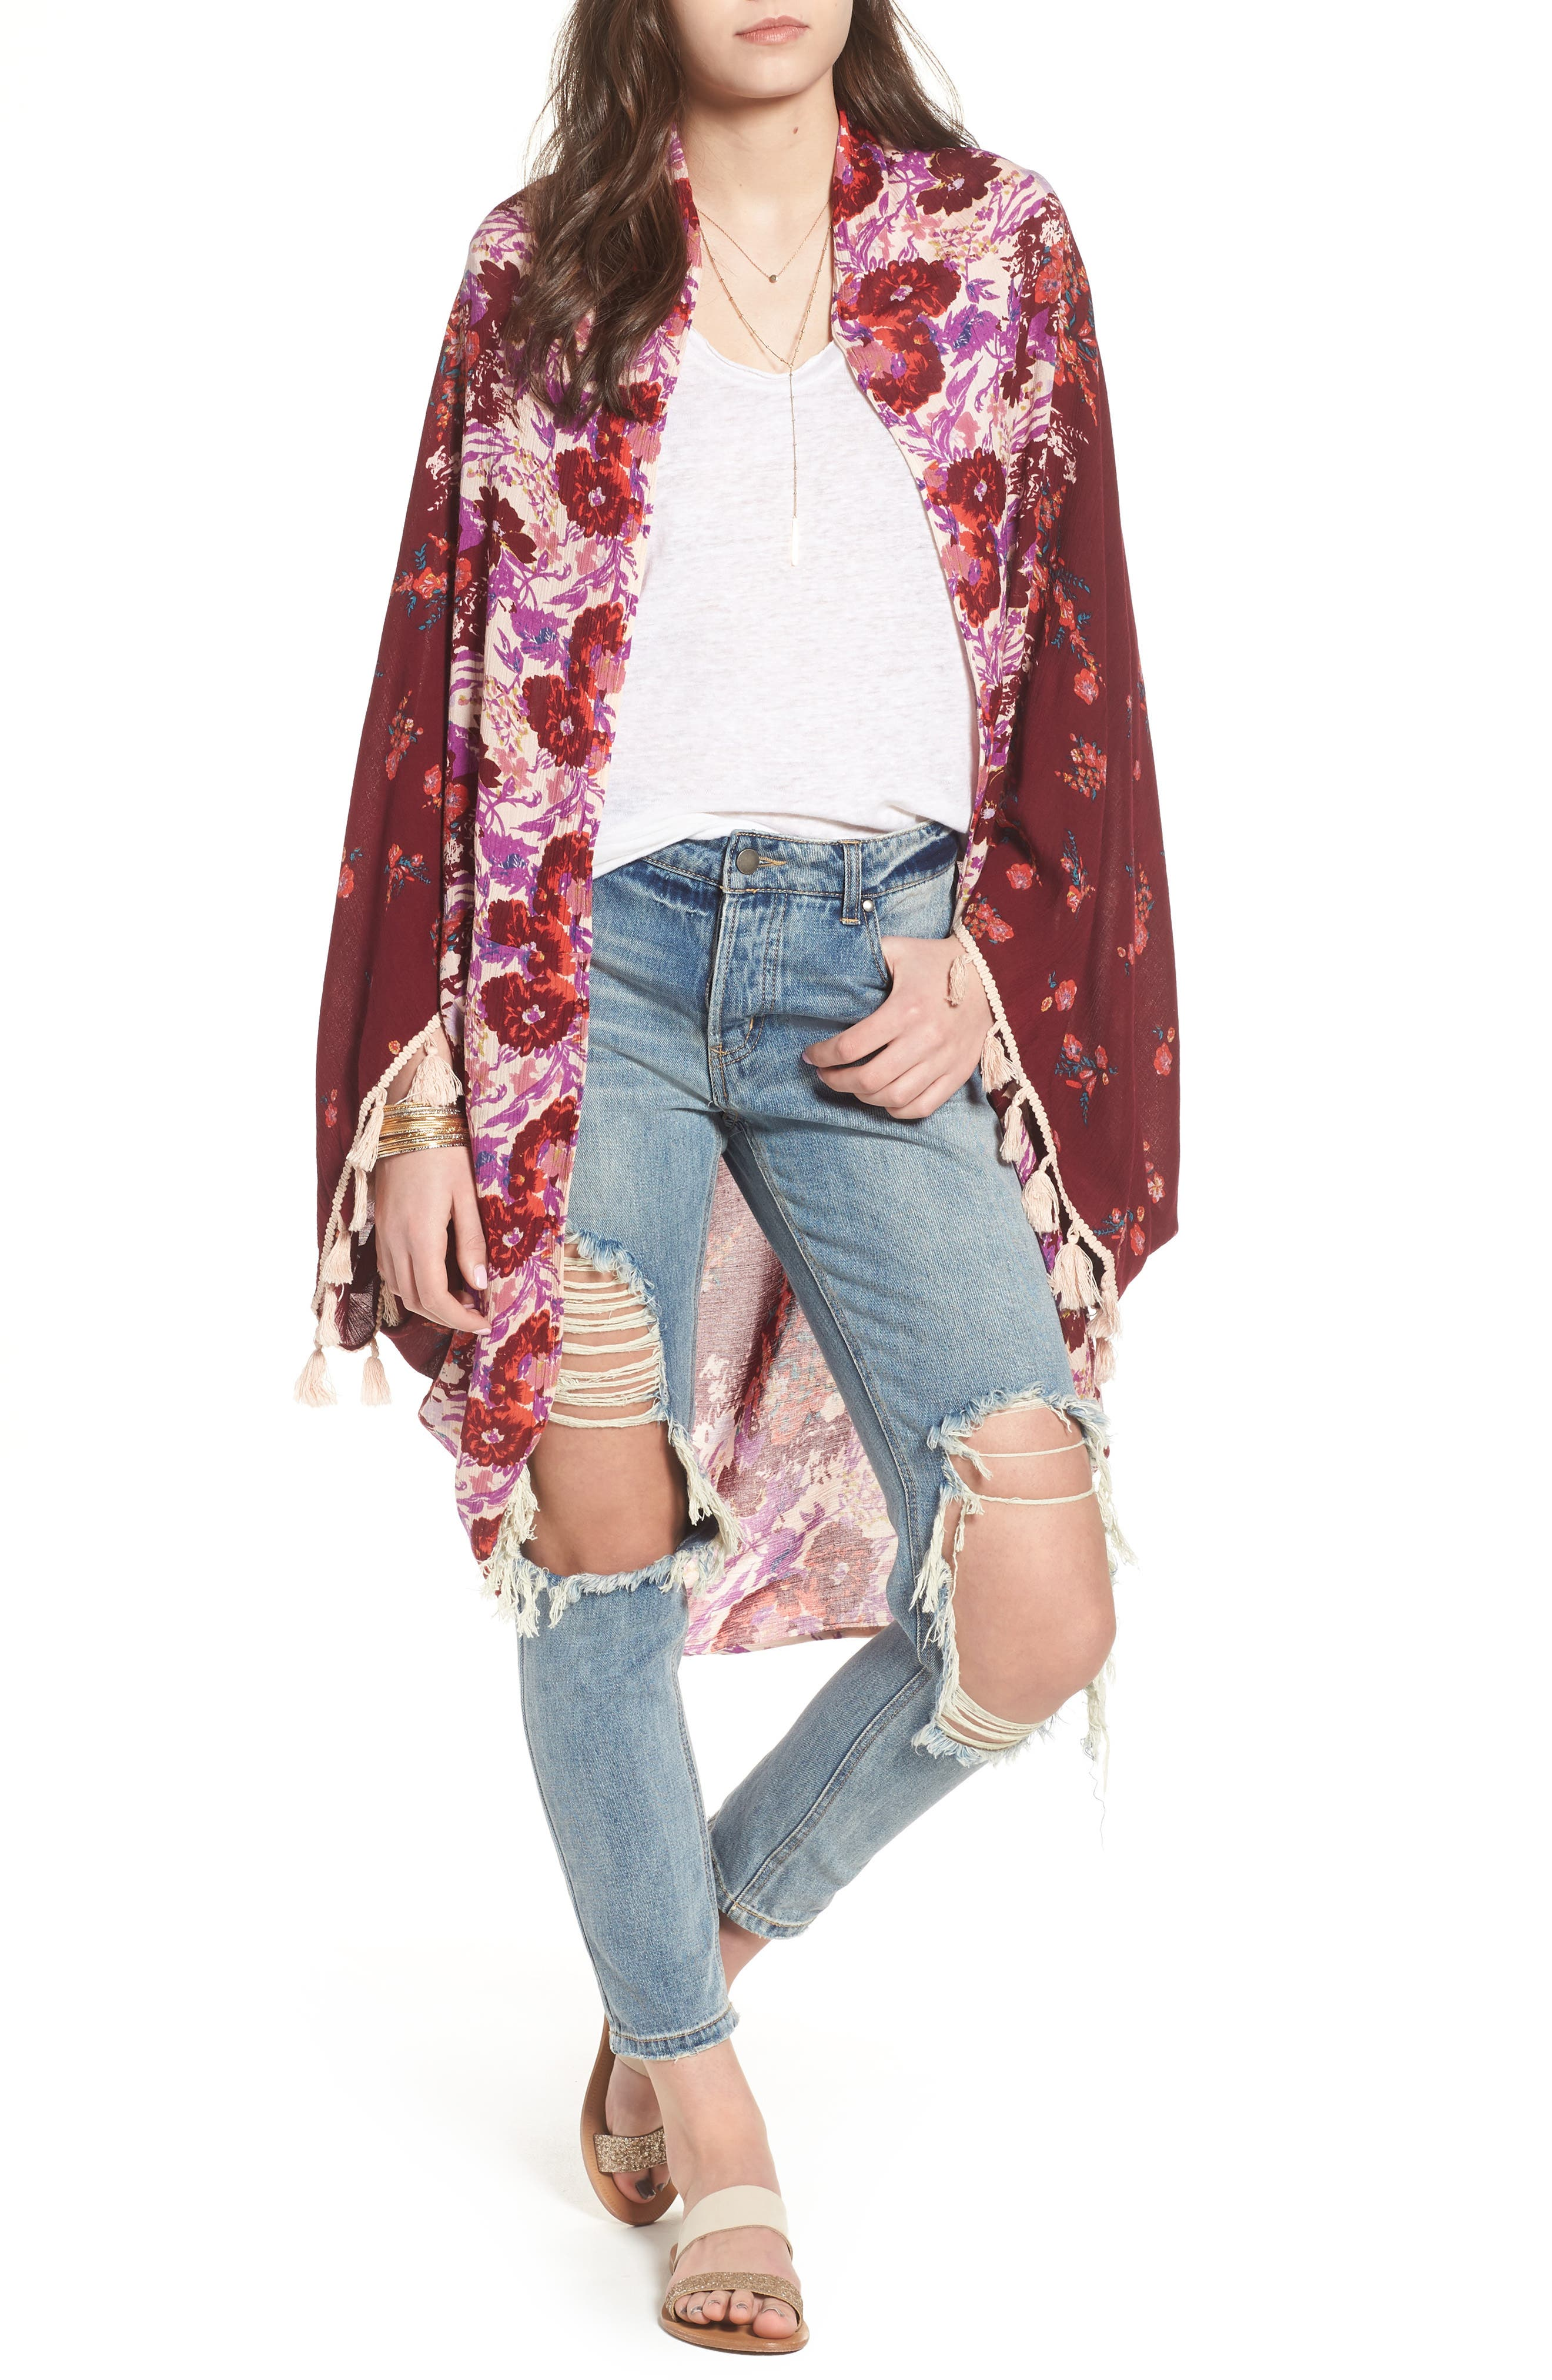 Bali Wrapped In Blooms Shawl,                             Main thumbnail 1, color,                             Red Combo